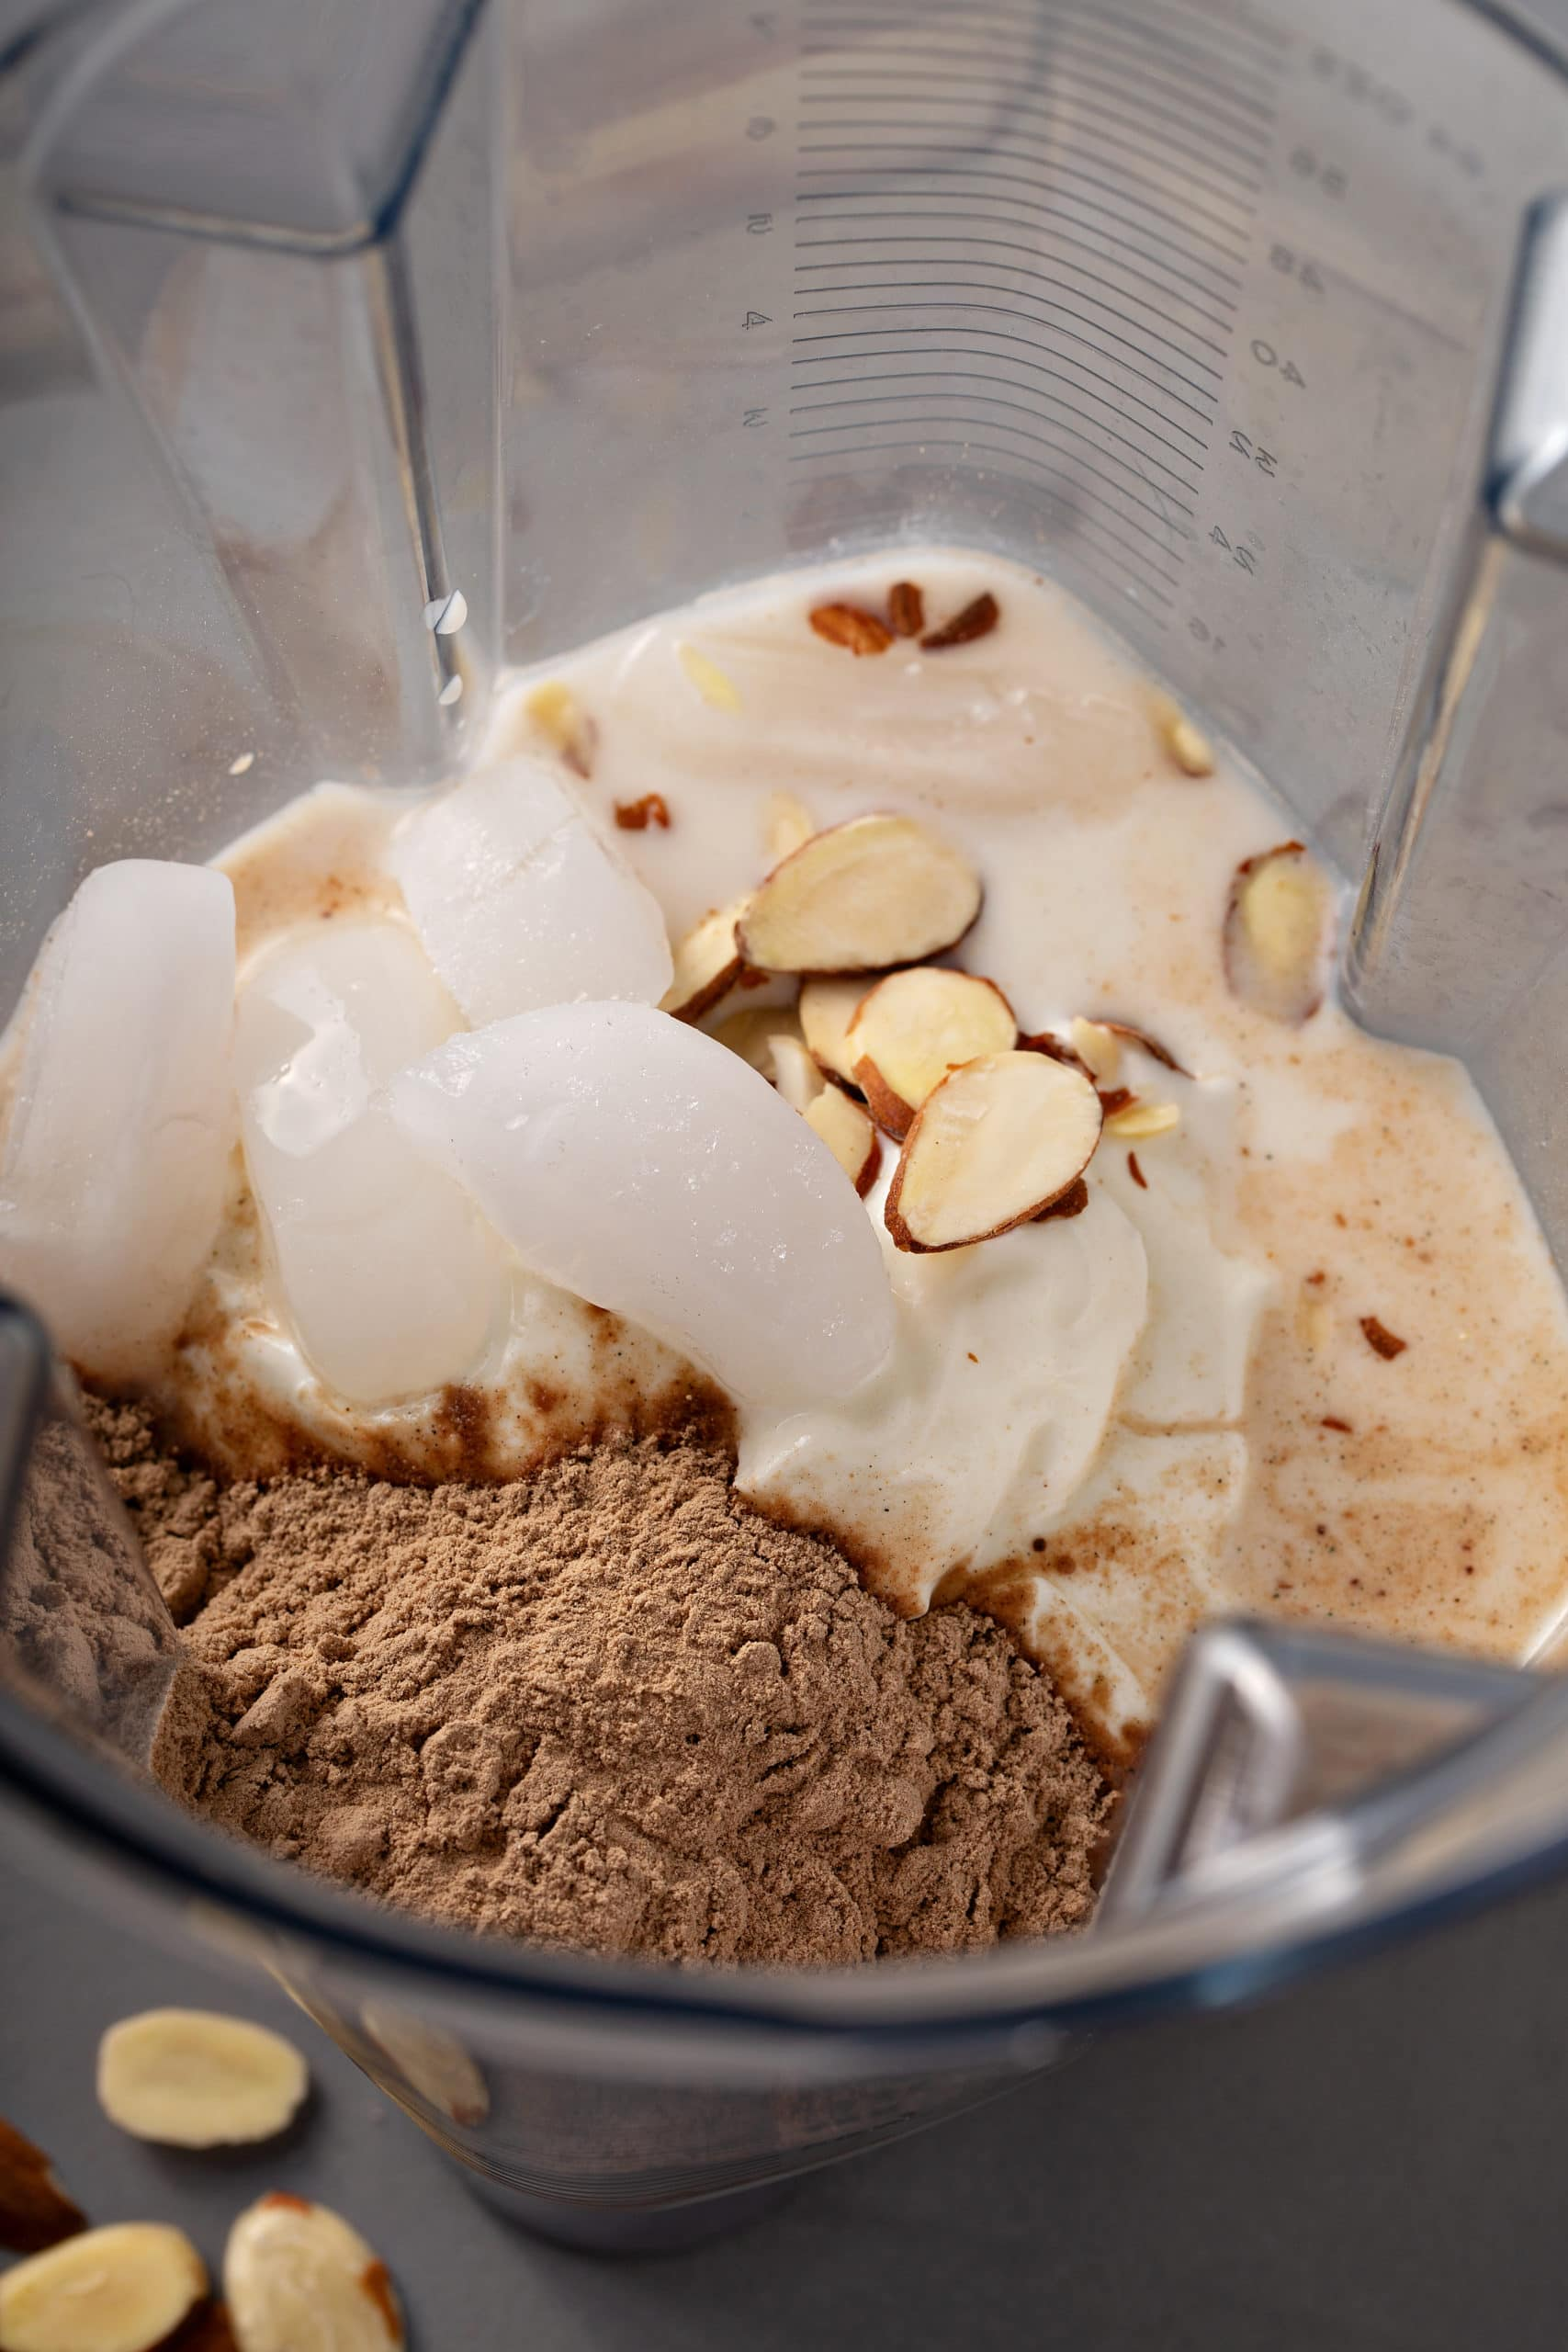 ingredients in a blender to make a chocolate coconut protein shake, ice cubes, almonds, chocolate protein powder, yogurt and milk